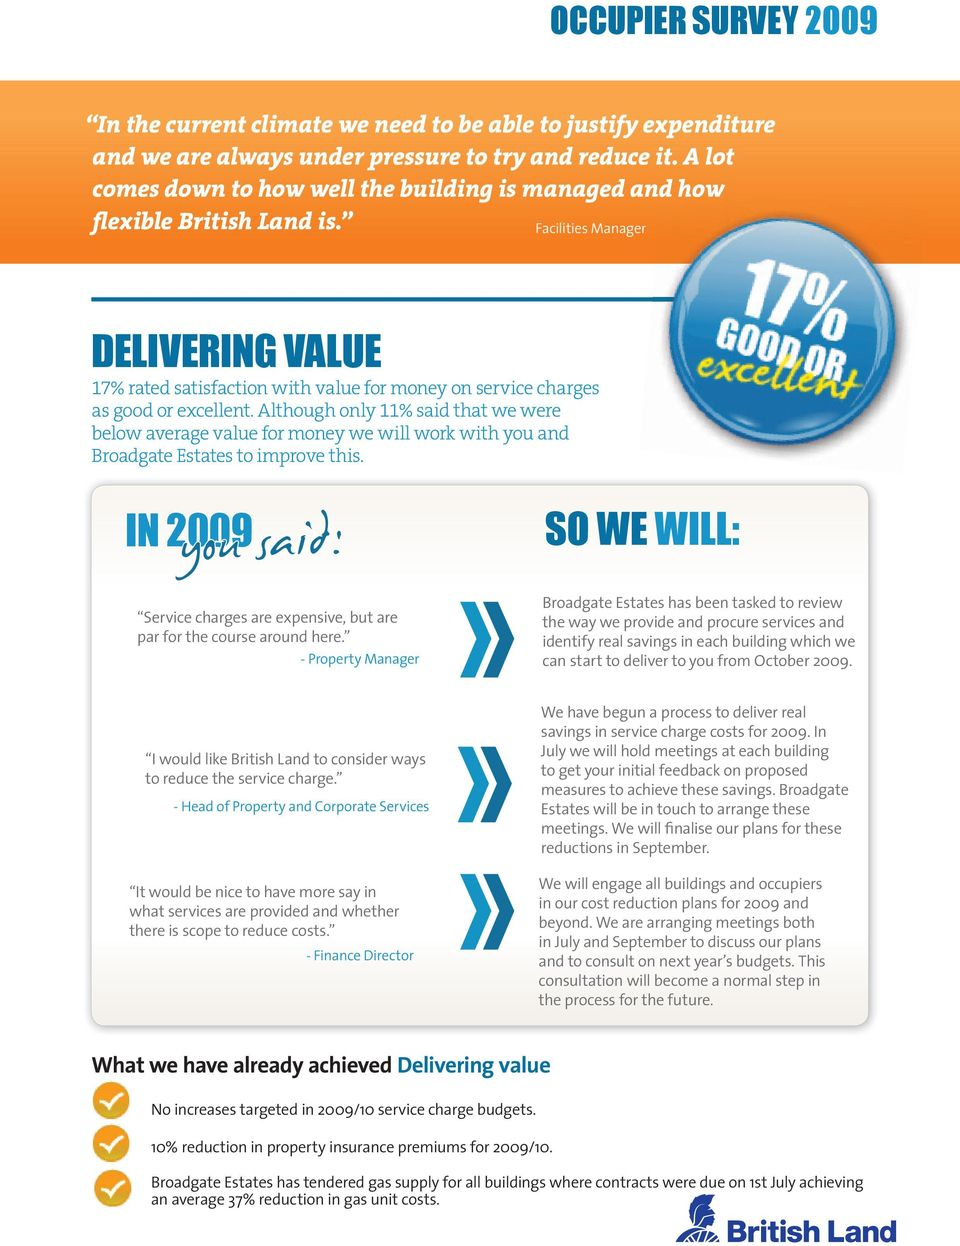 Facilities Manager delivering value 17% rated satisfaction with value for money on service charges as good or excellent.